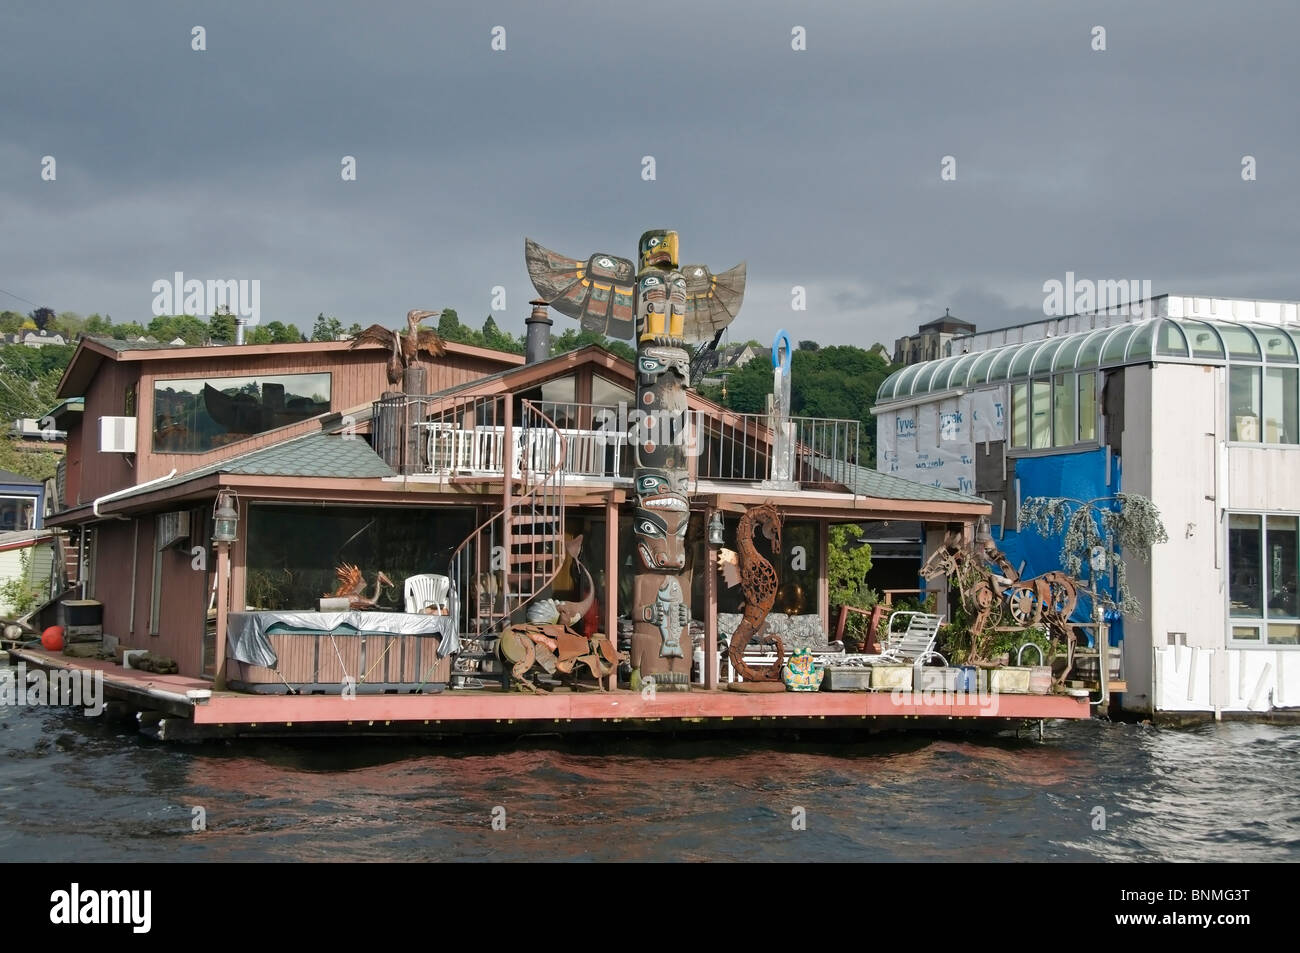 Unique residential houseboat on the water on Lake Union near downtown Seattle, Washington. - Stock Image